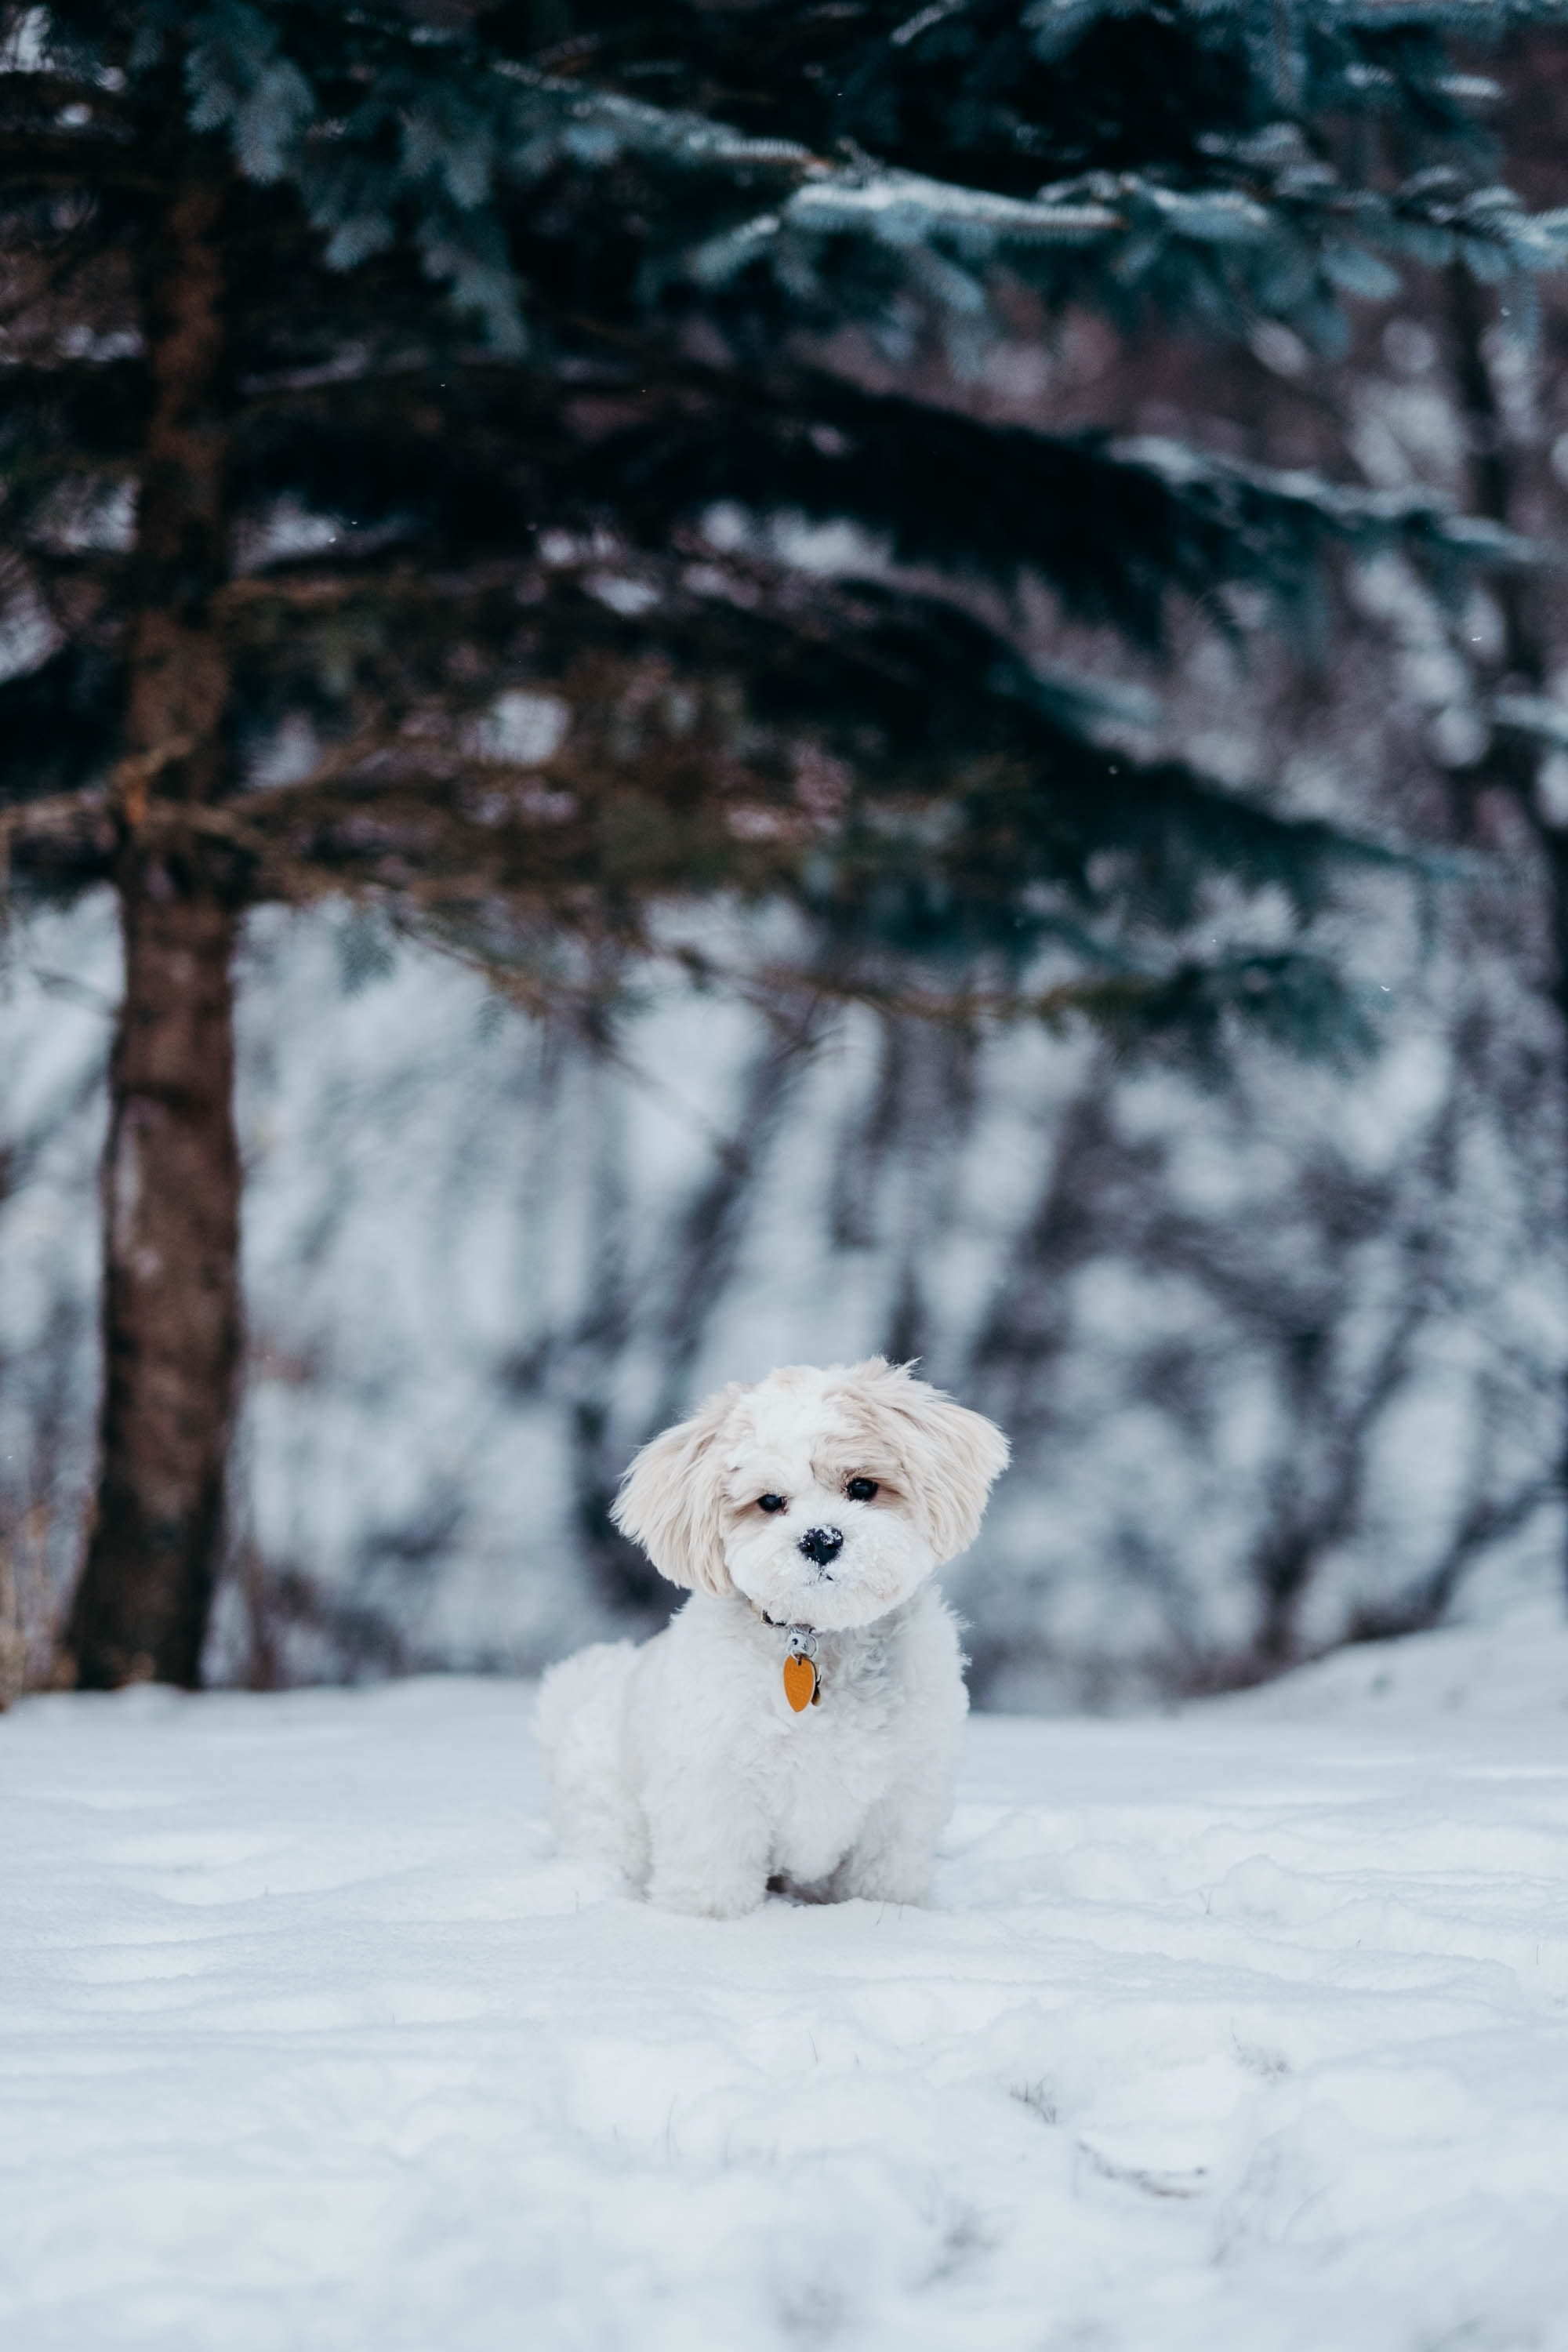 white dog standing on snow field beside tree